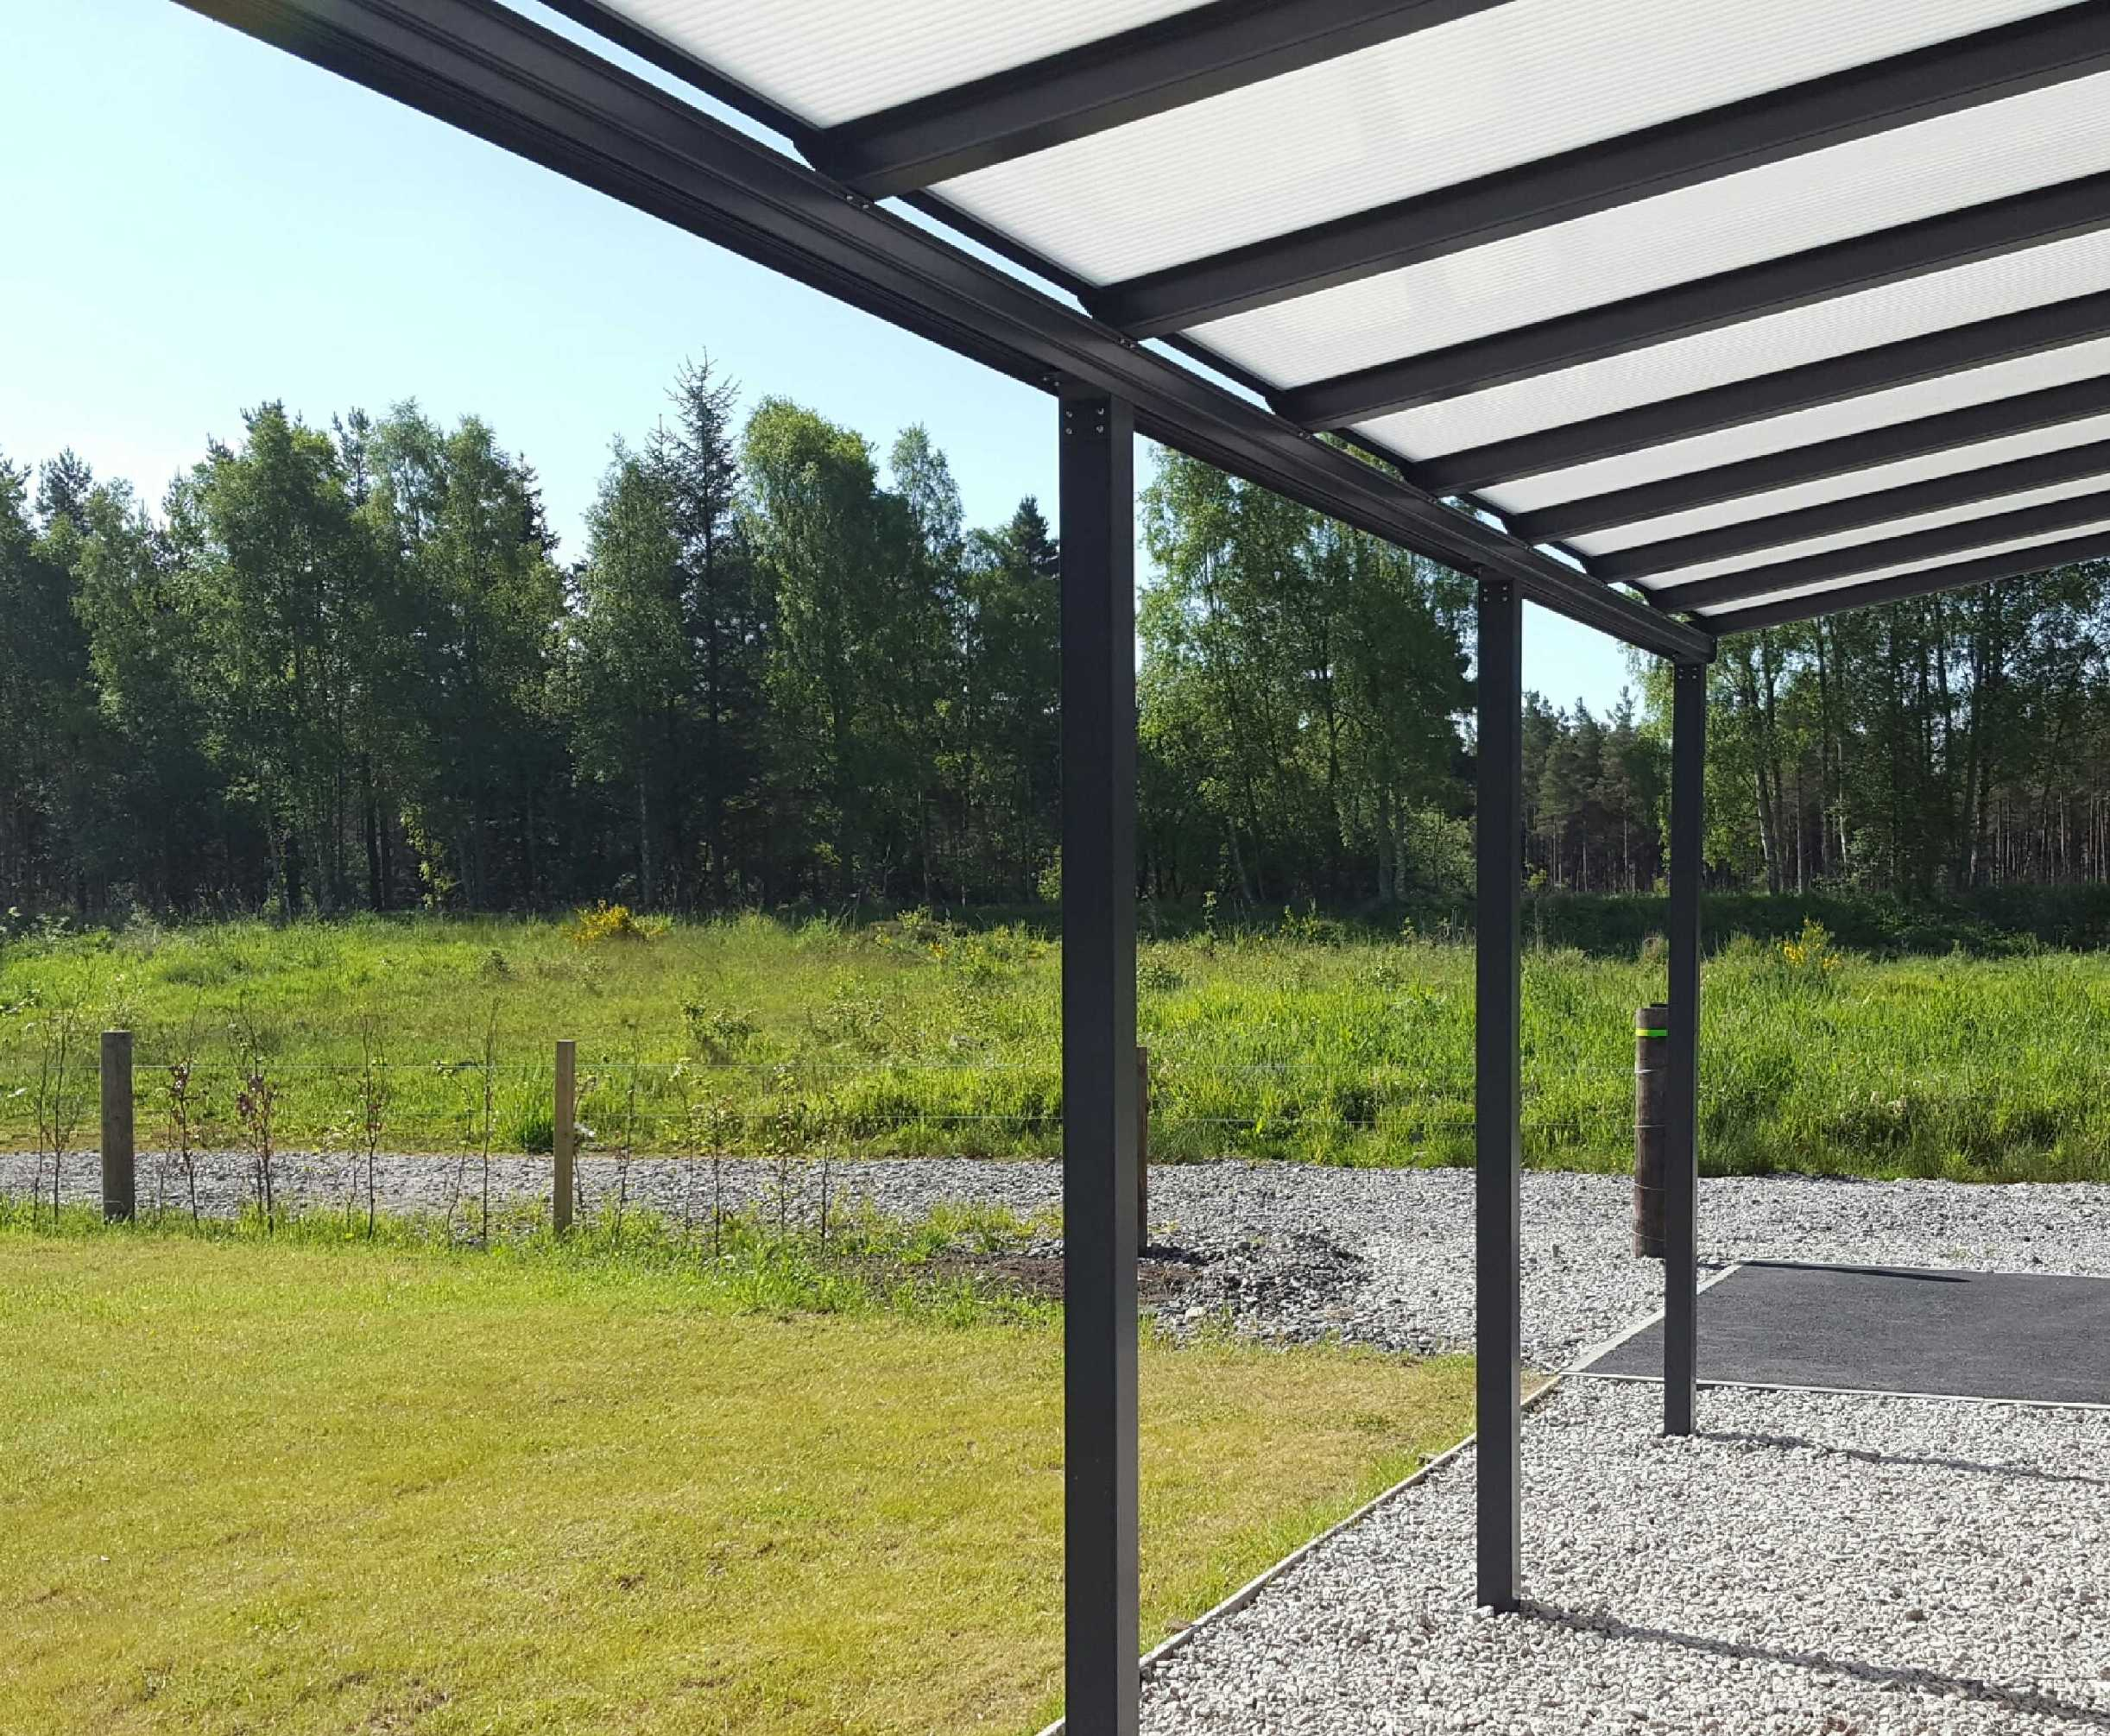 Omega Smart Lean-To Canopy, Anthracite Grey, 16mm Polycarbonate Glazing - 9.9m (W) x 4.0m (P), (5) Supporting Posts